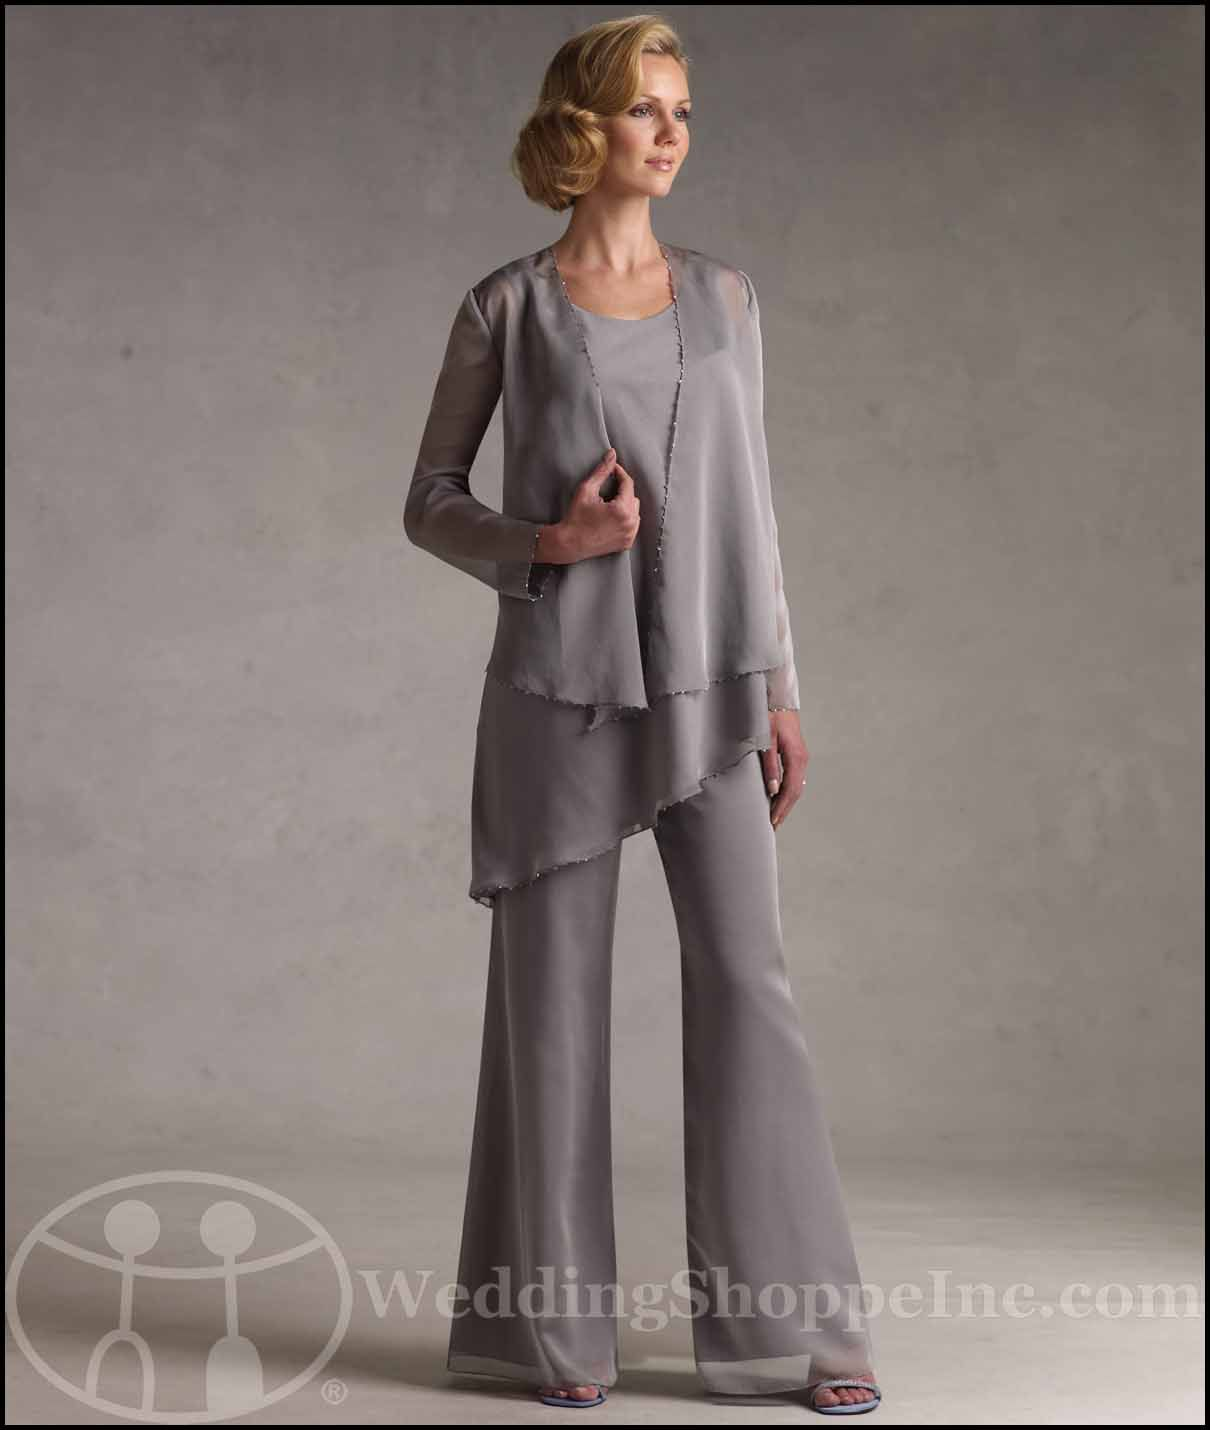 Mother of the Bride Pant Suits at the | Wedding shoppe, Feminine and ...